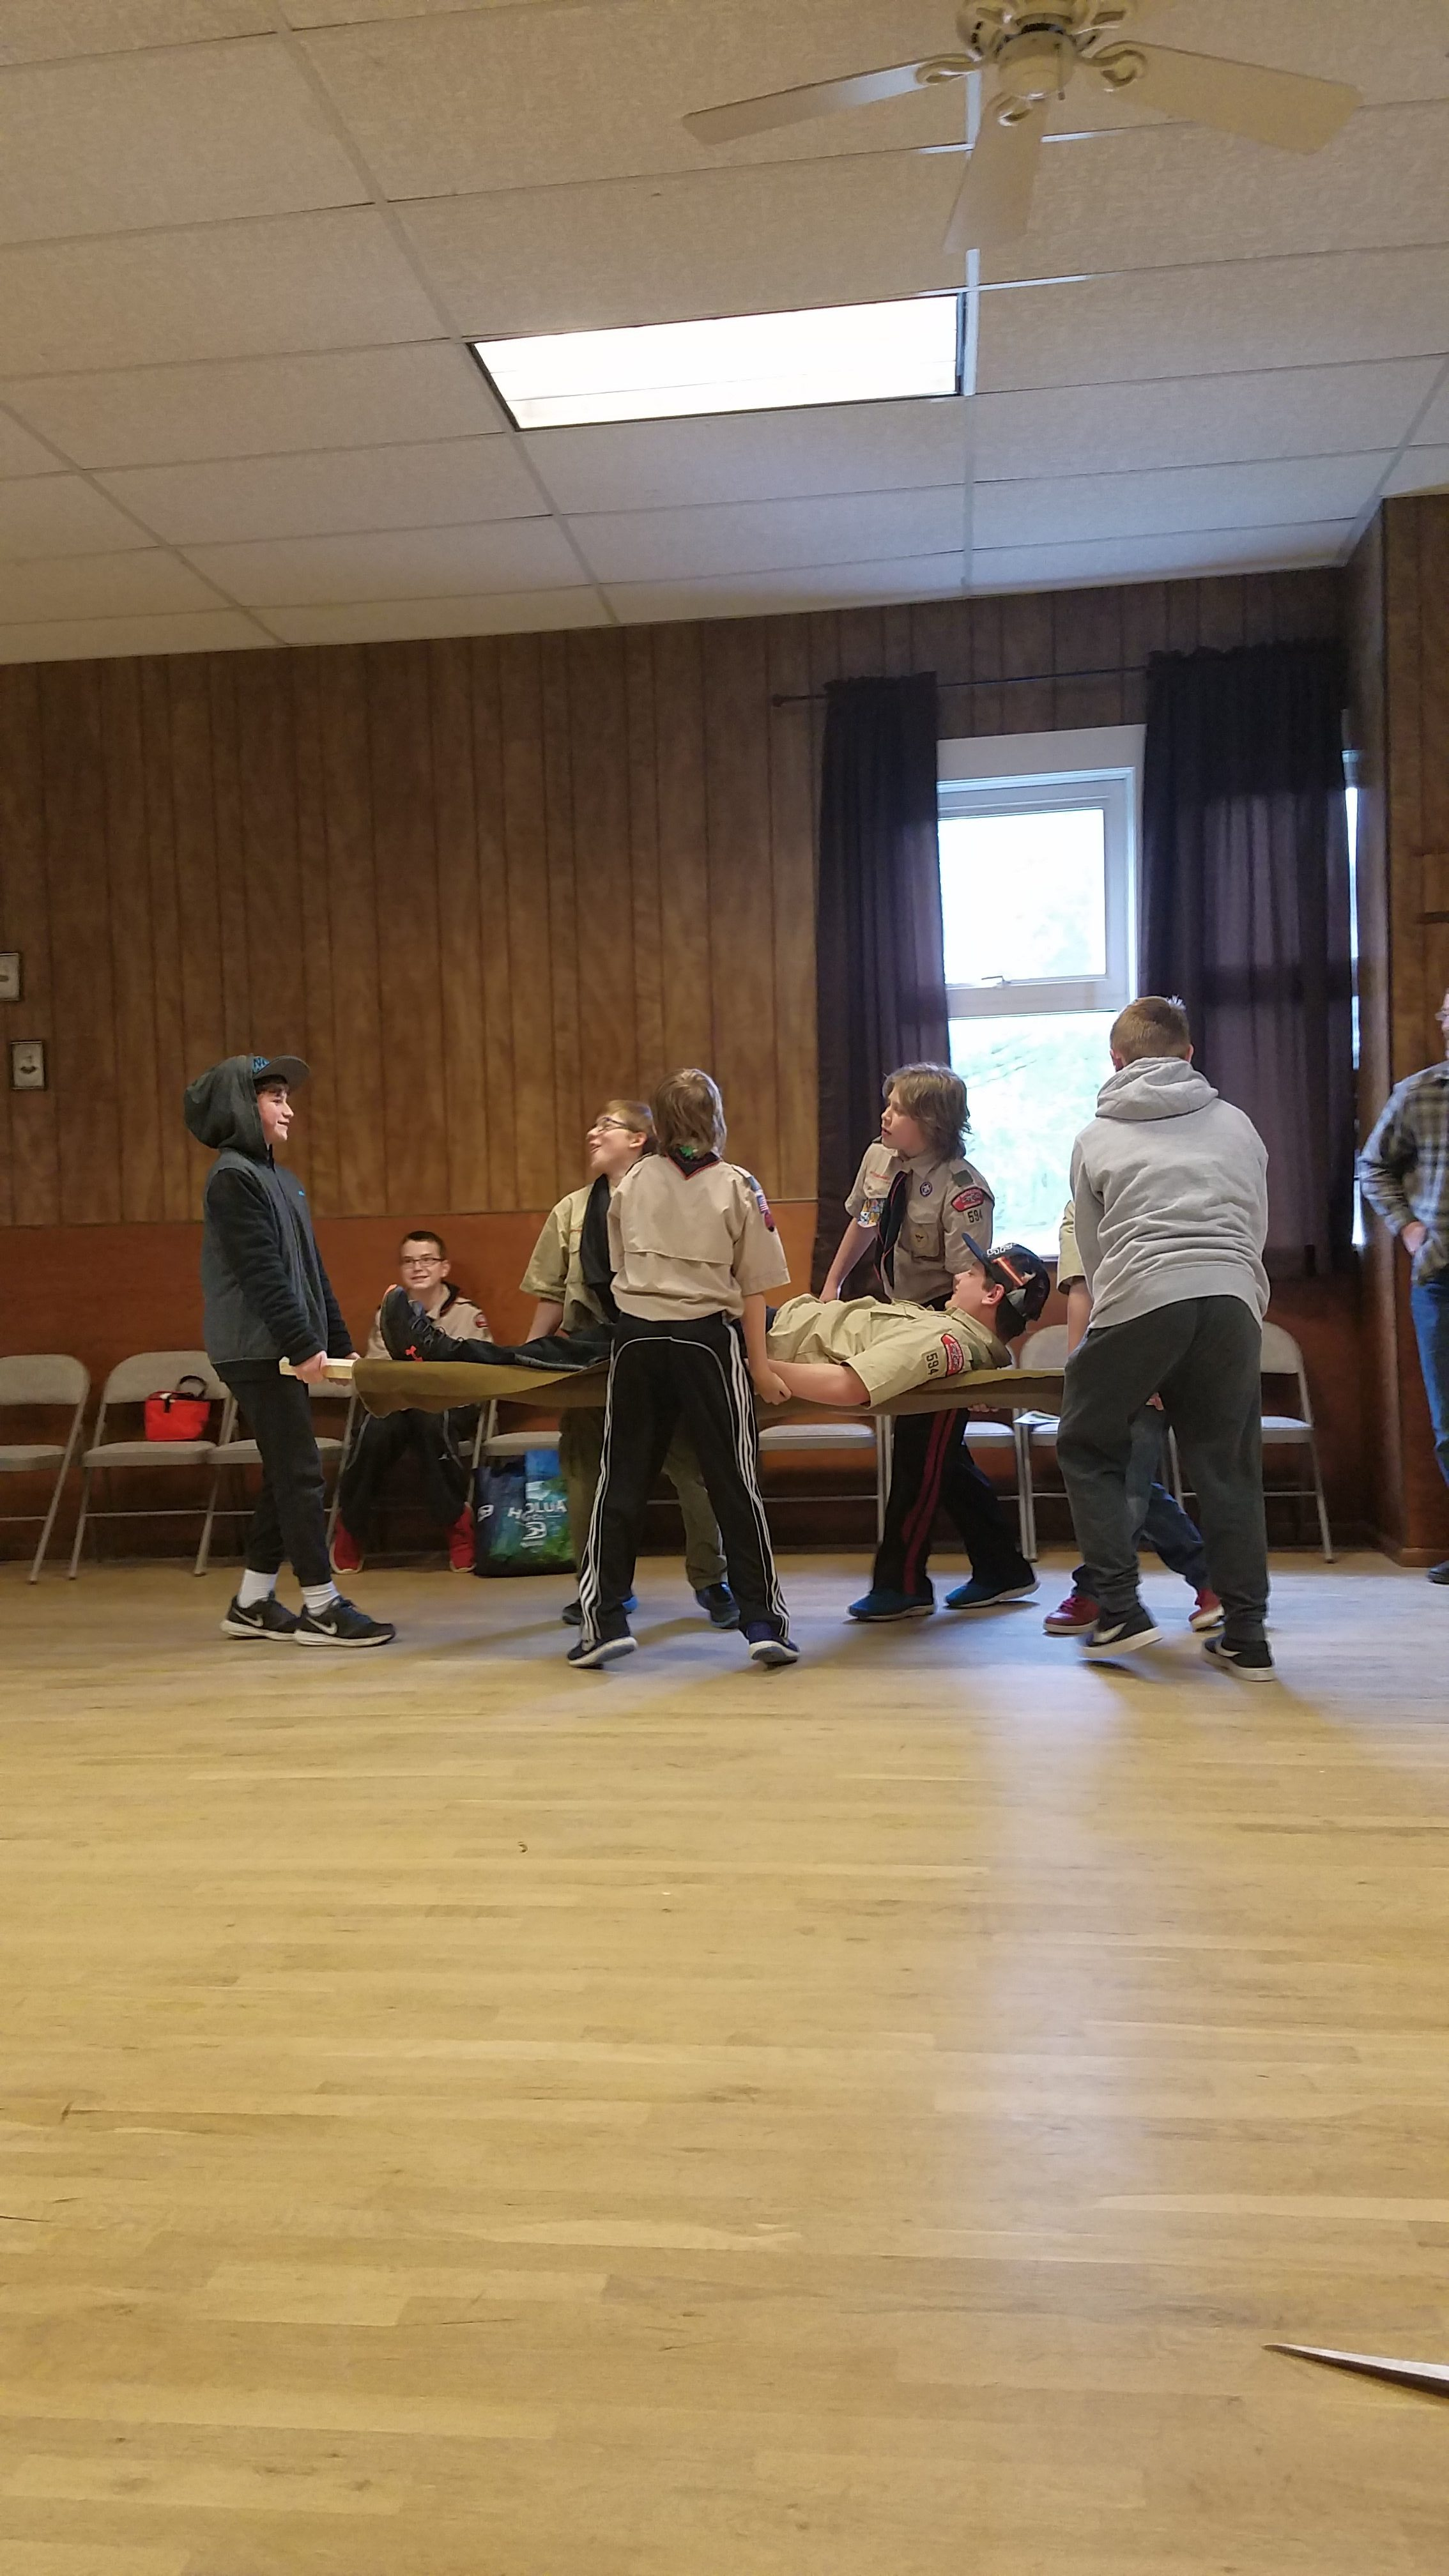 First Aid Merit Badge Day At The Grange April 22